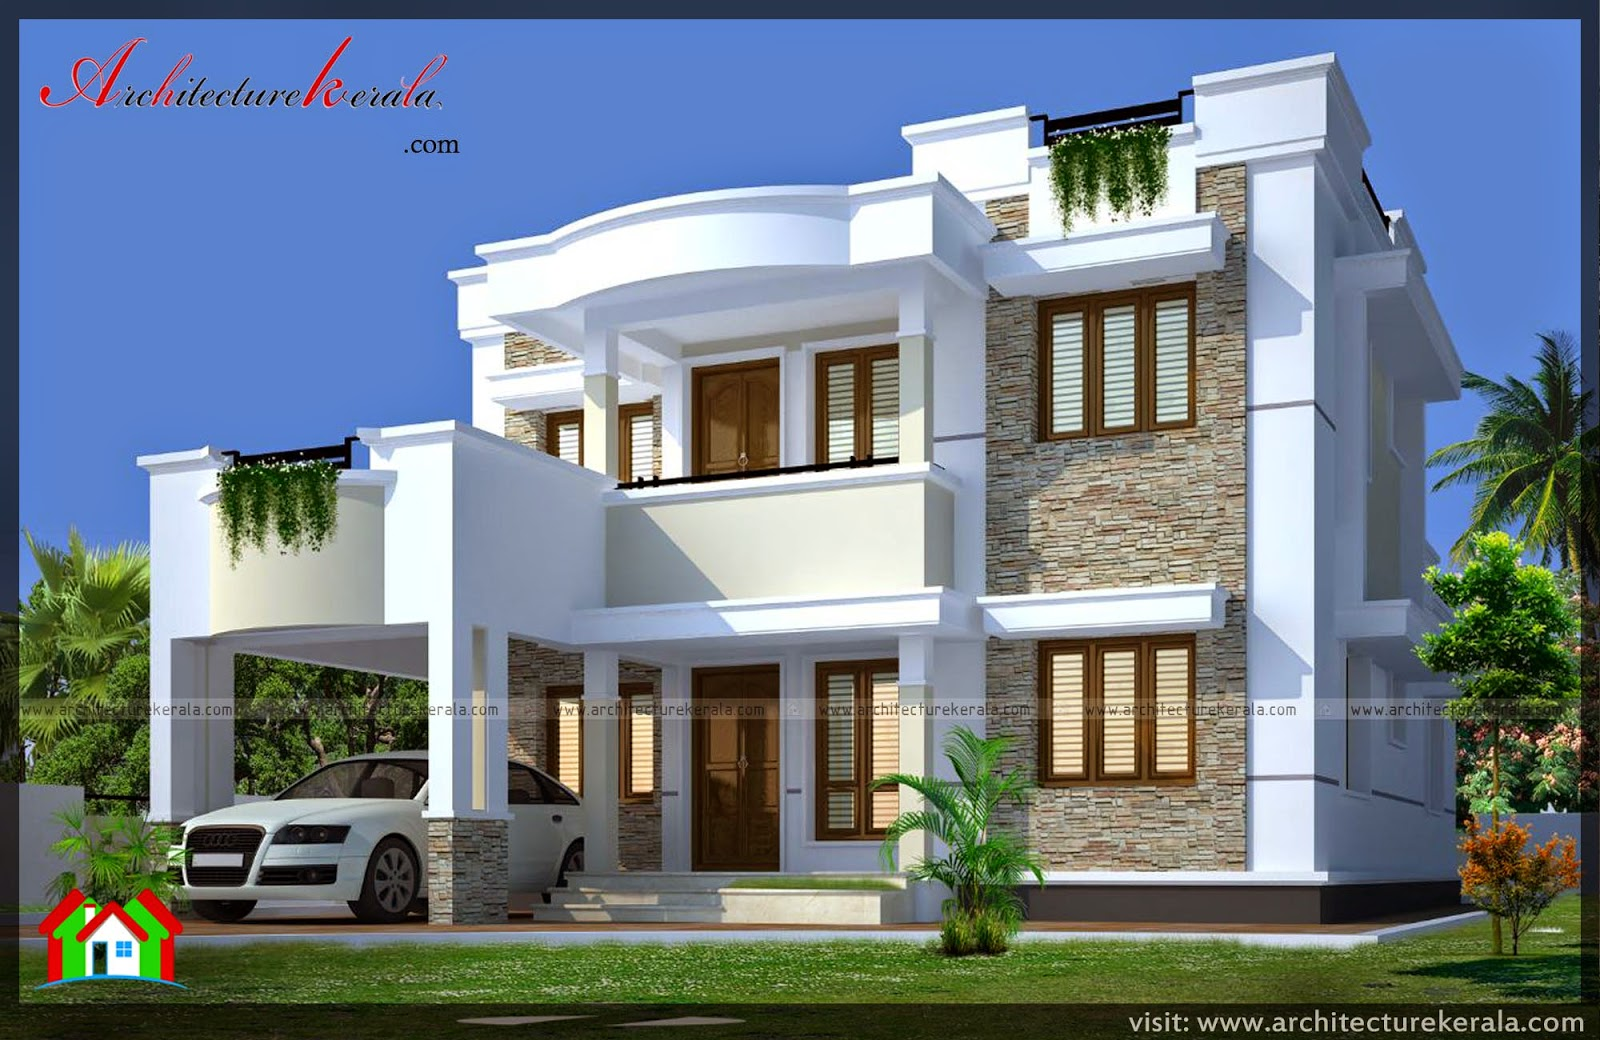 Contemporary elevation and house plan architecture kerala for Home designs kerala architects